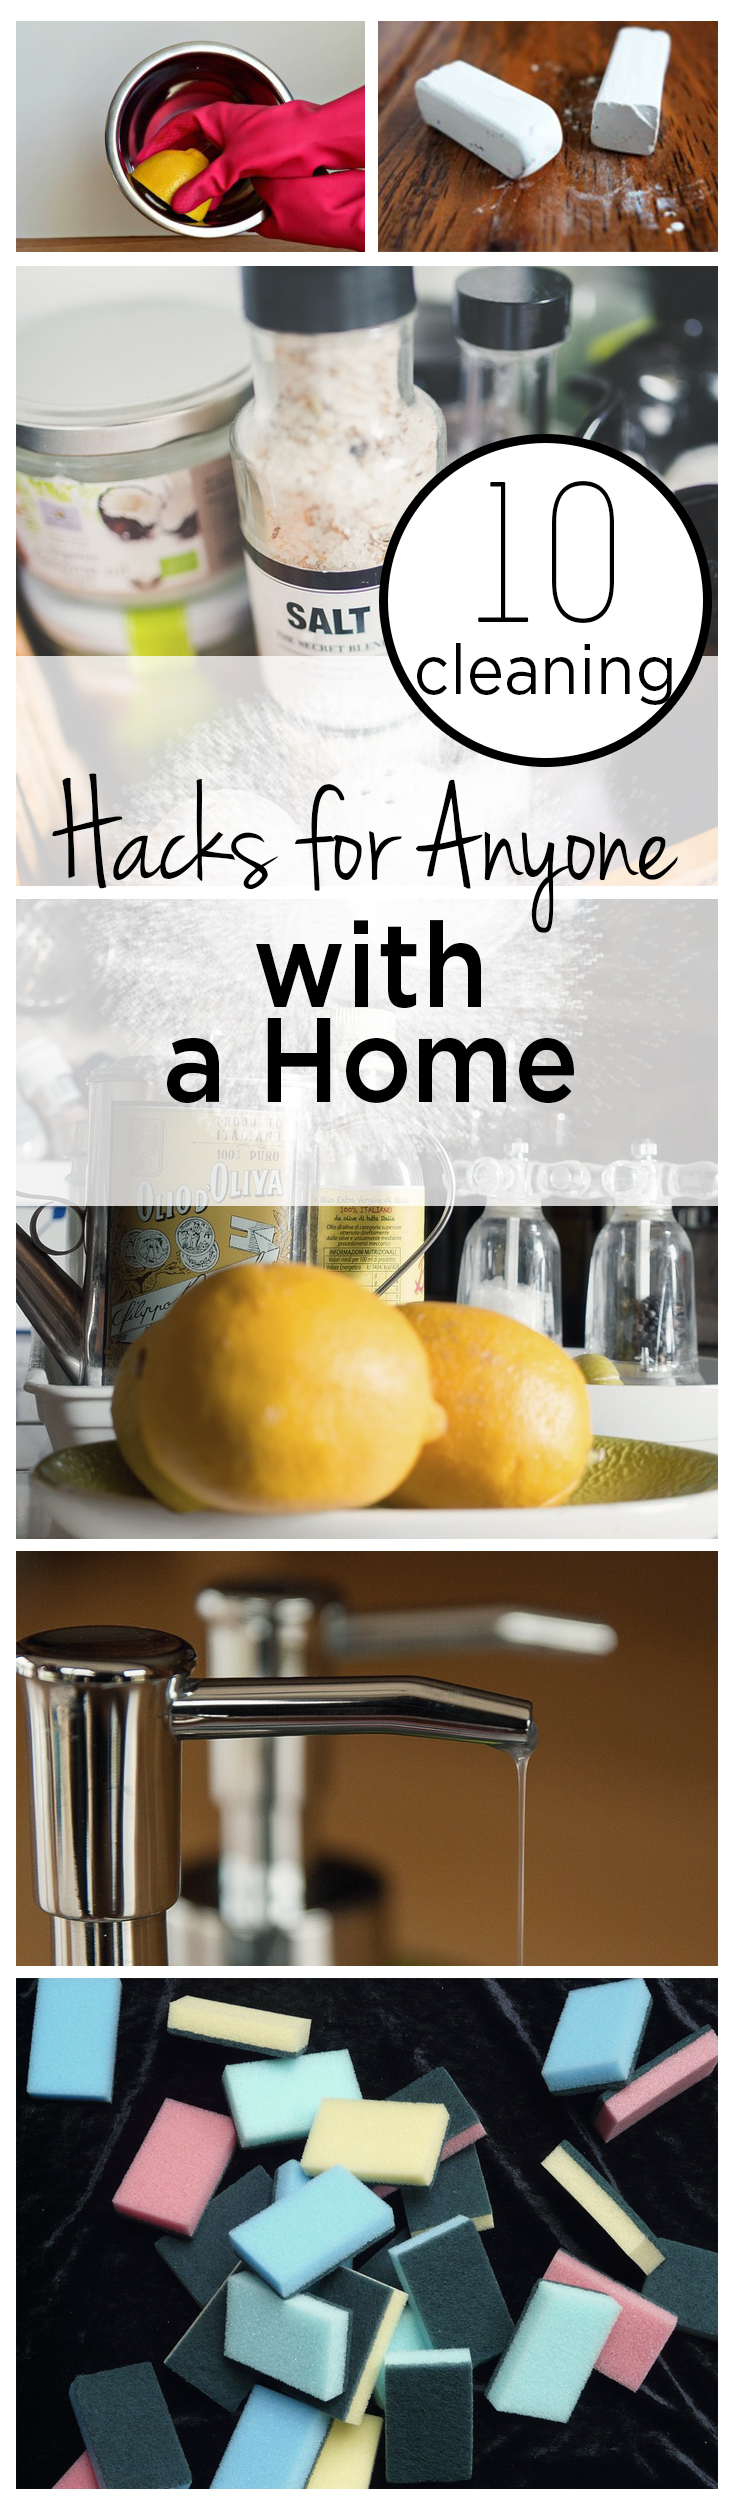 Cleaning hacks , handy cleaning hacks, cleaning tips, popular pin, cleaning tips and tricks, organization, organized home.